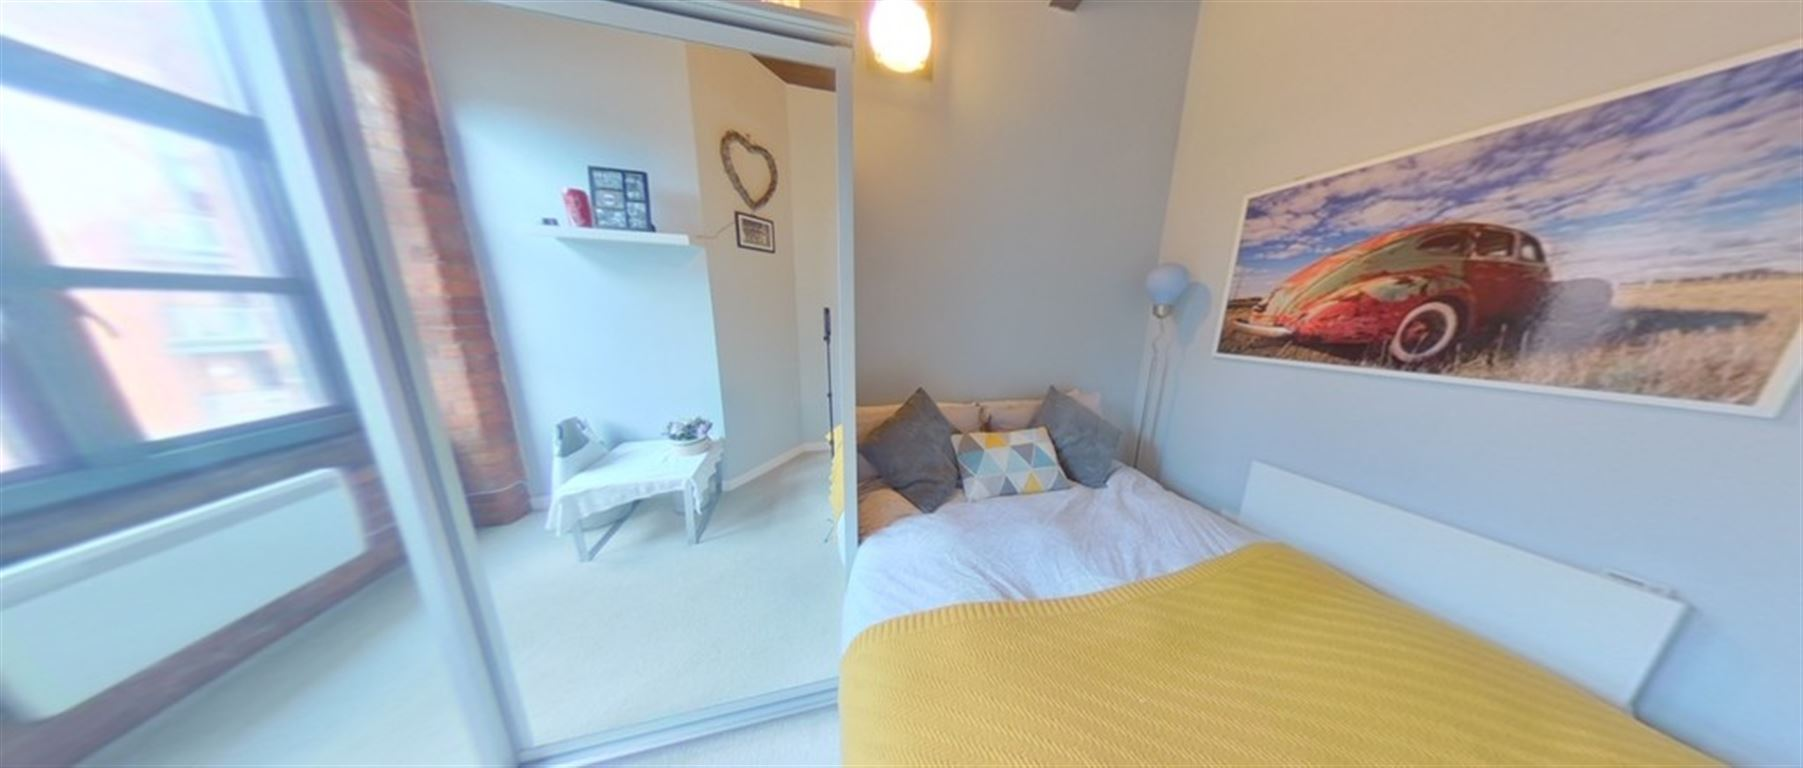 Worsley Mill, Manchester - 1 Bed - Apartment